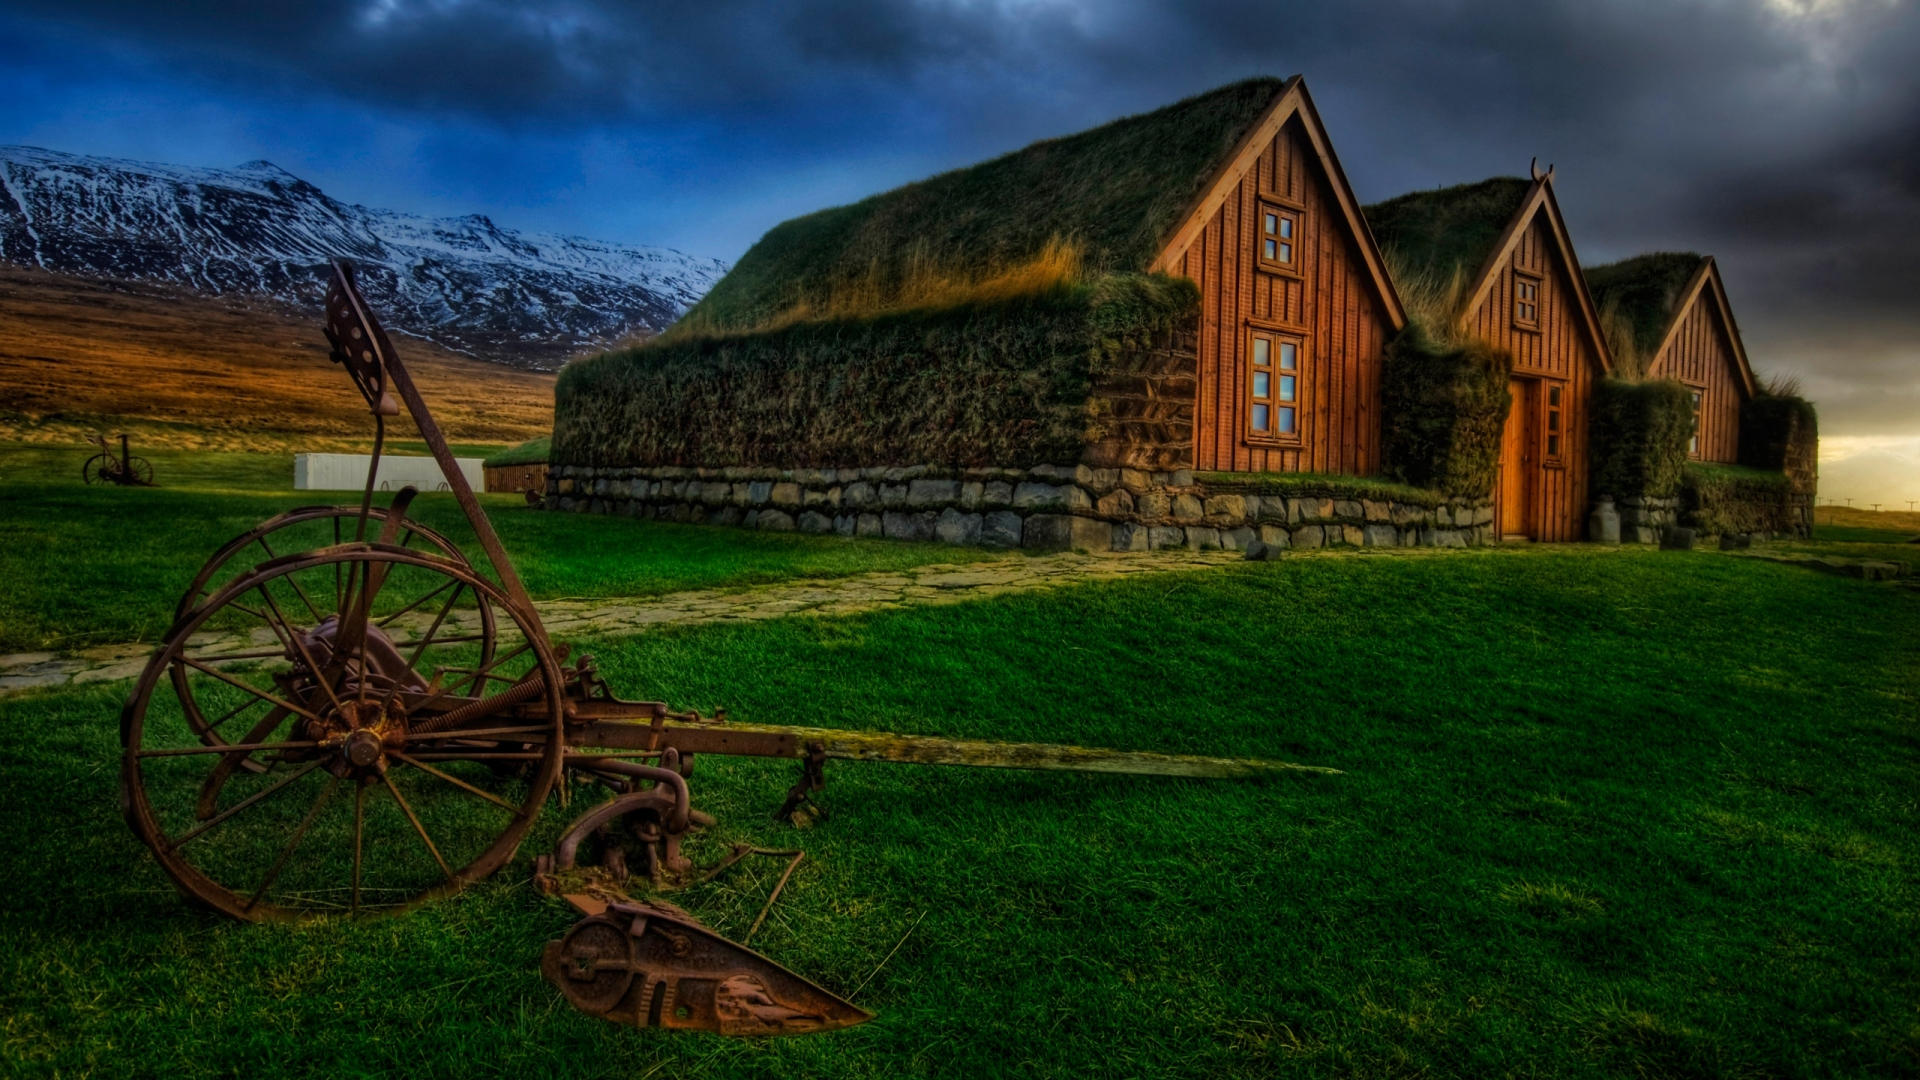 1366x768 hd desktop wallpapers country - photo #43